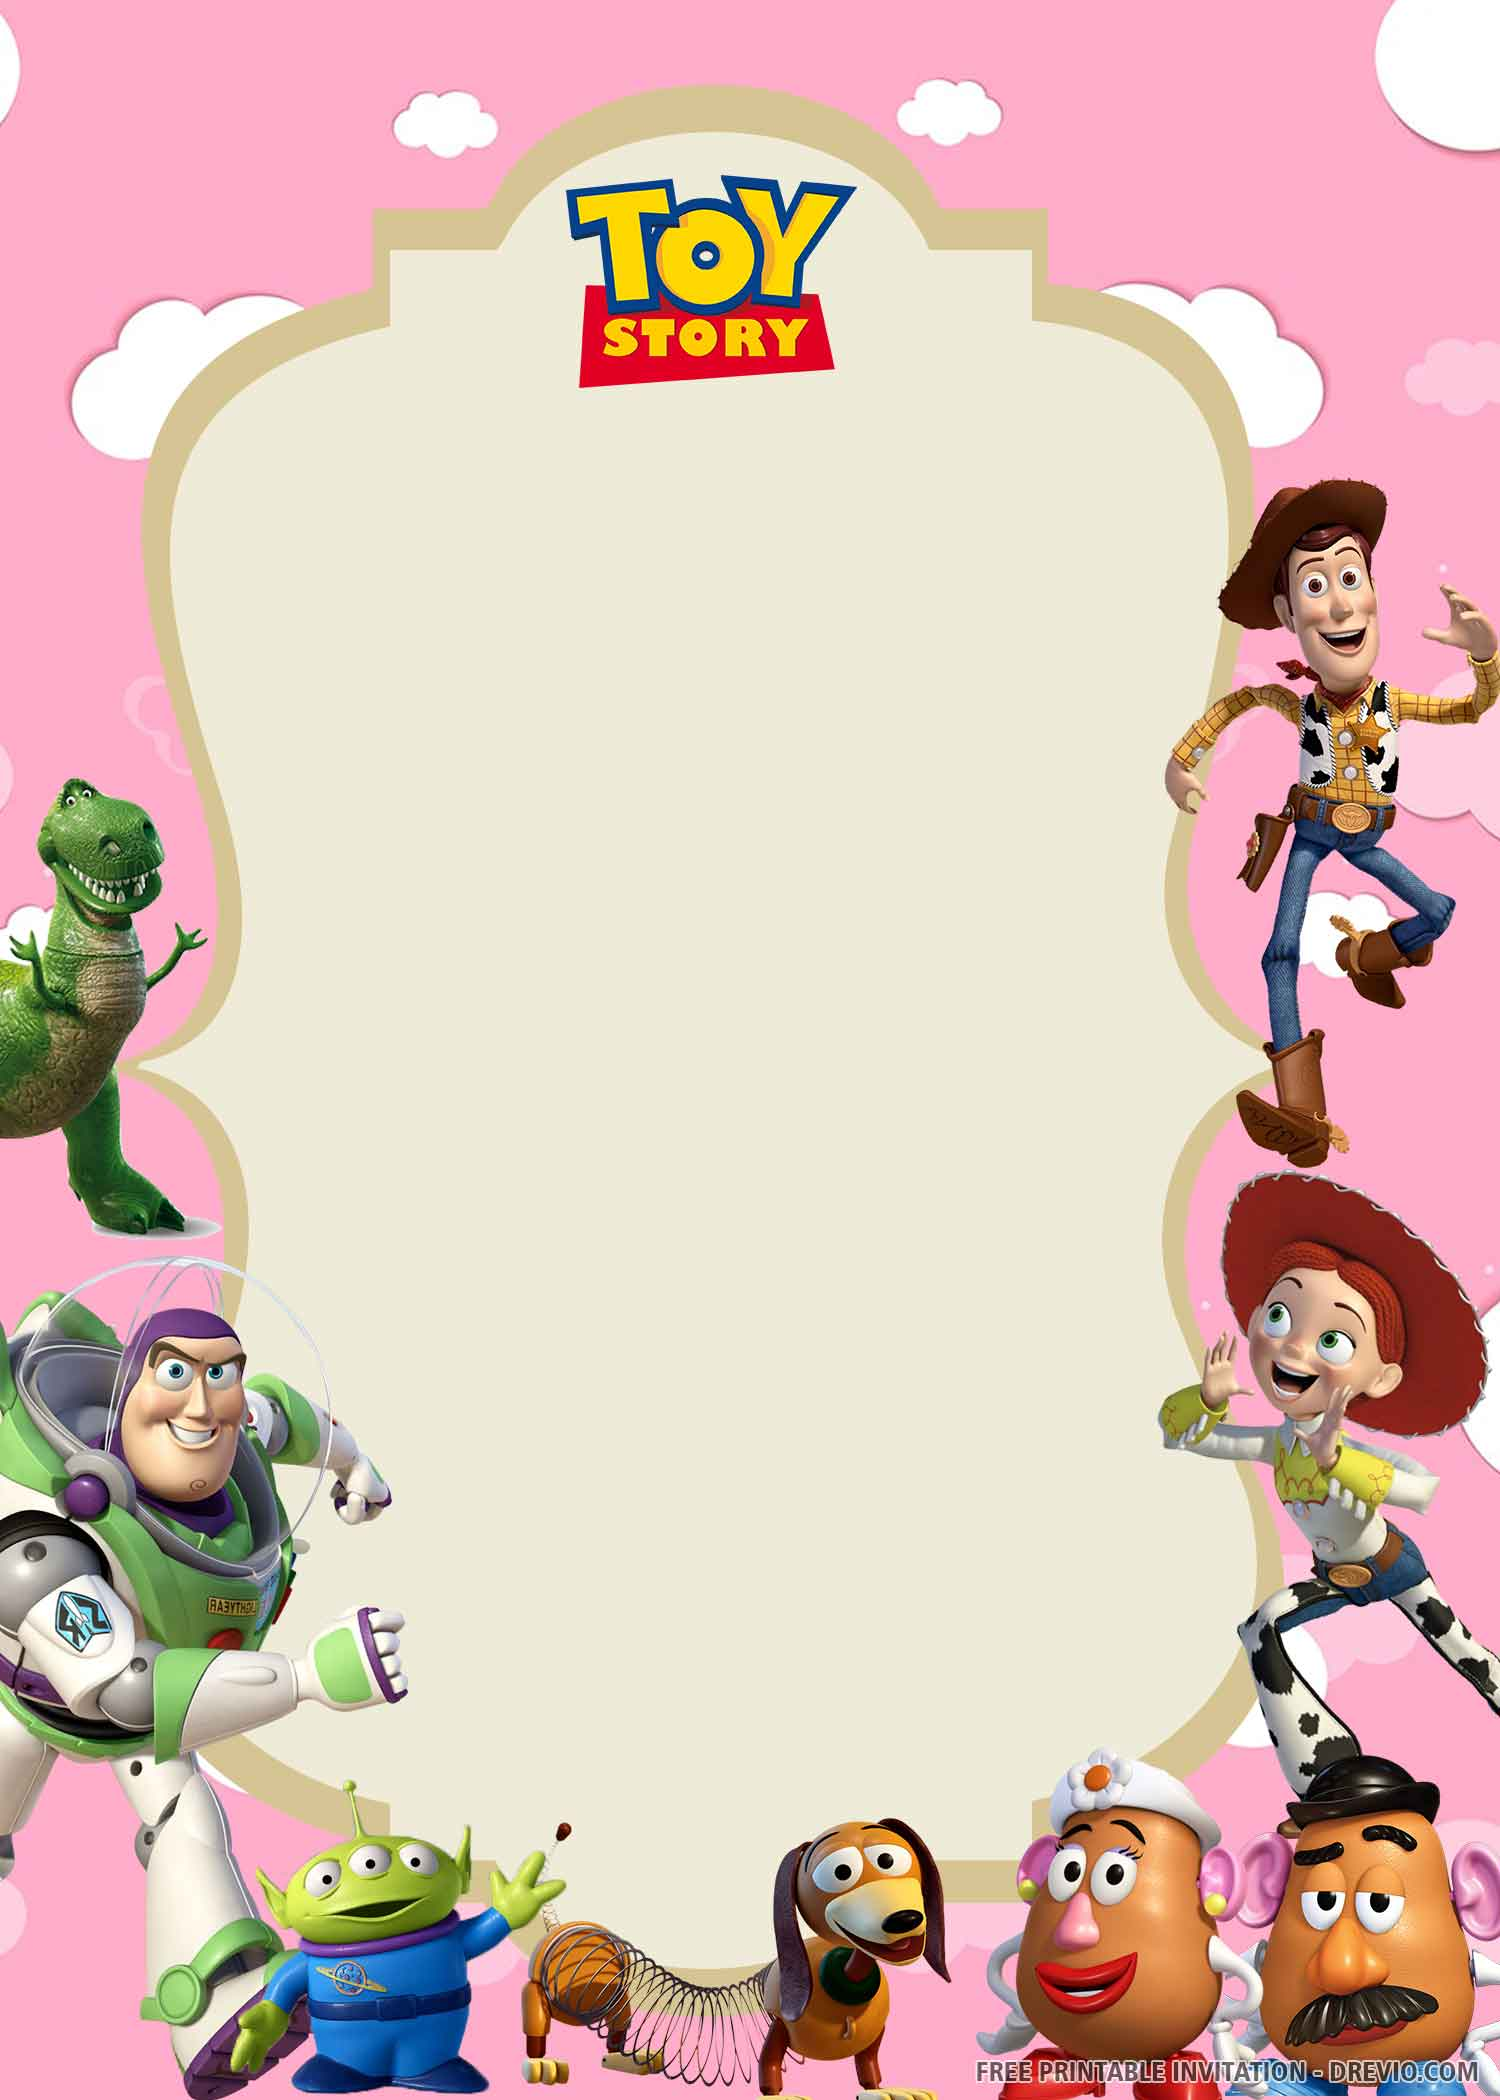 Free Printable Toy Story Birthday Invitation Template